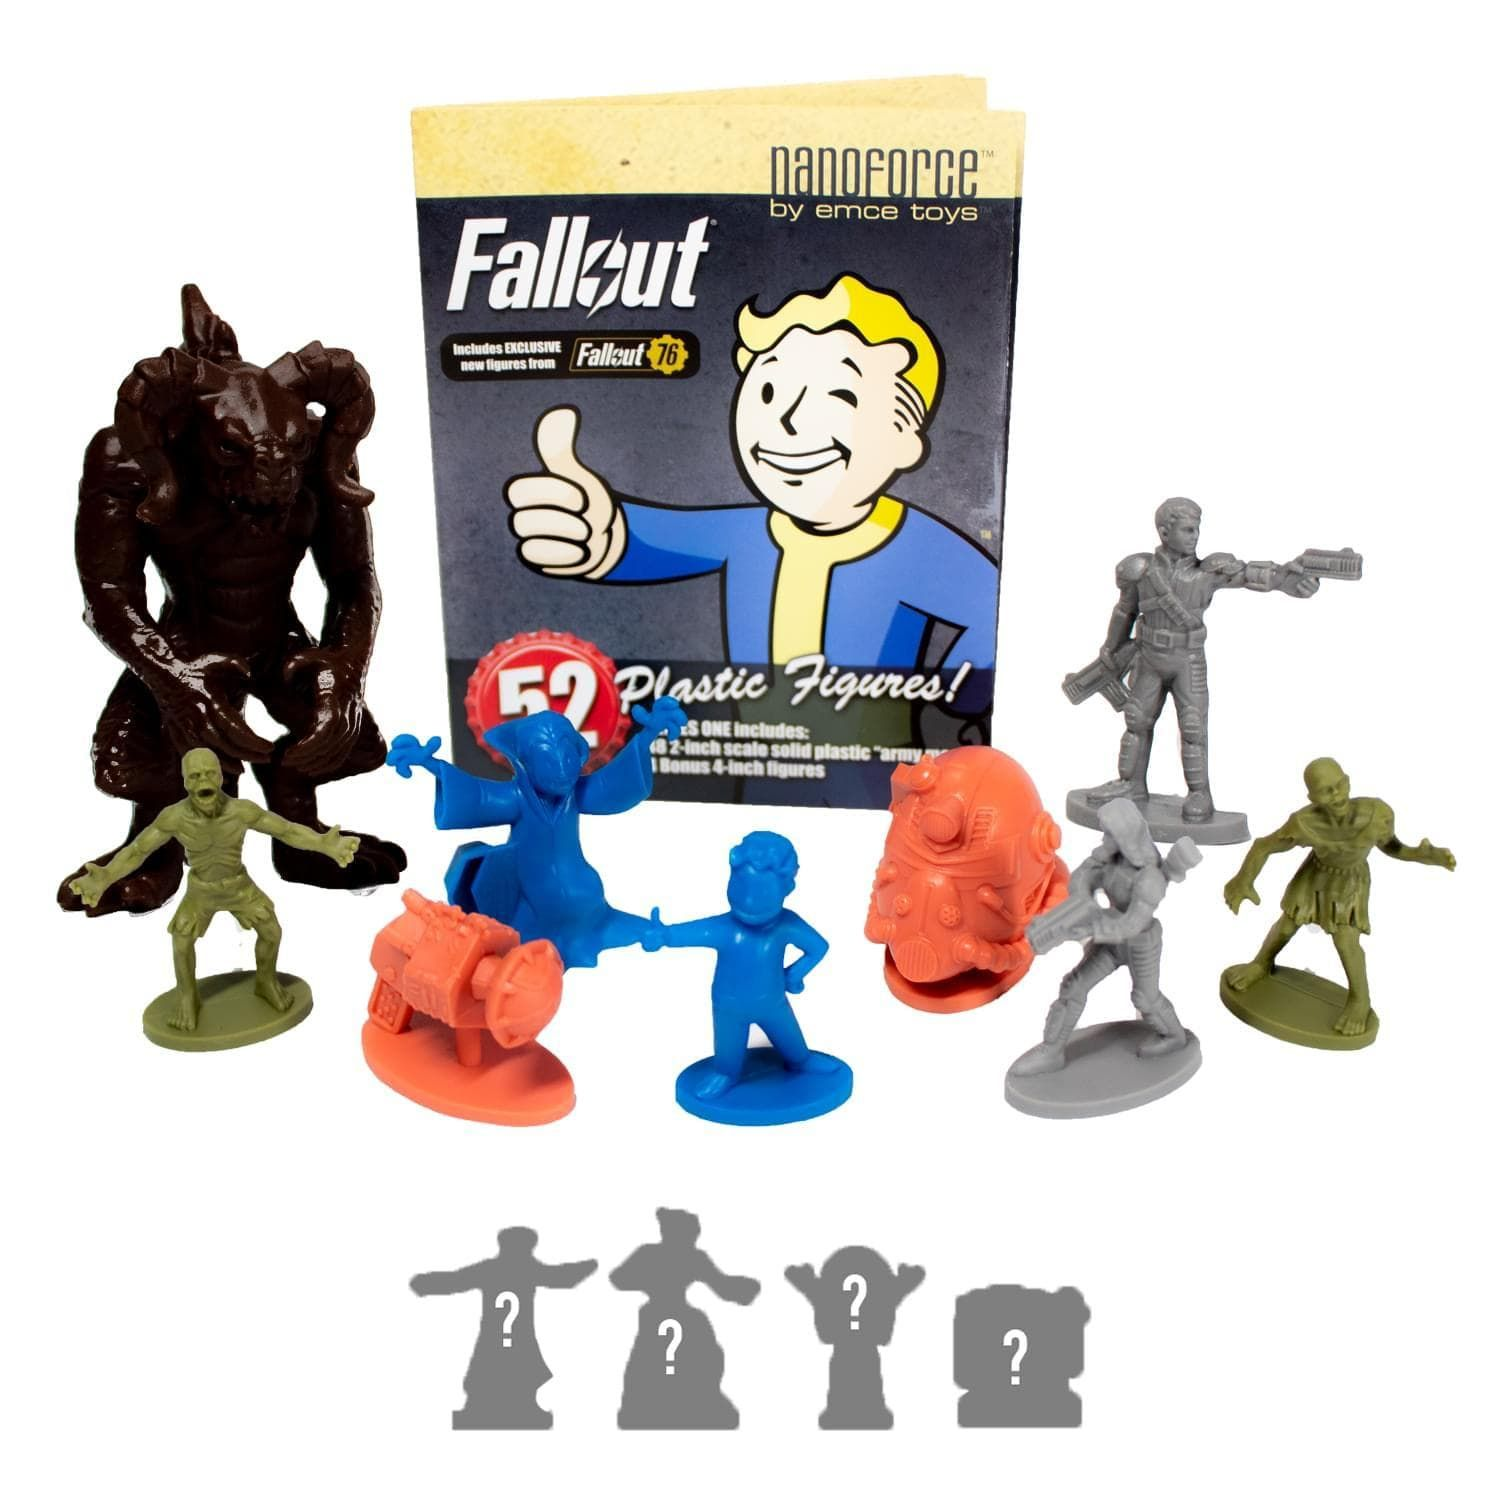 Fallout Nanoforce Series 1 Army Builder Figure Collection Boxed Volume 3 In 2021 Unique Stocking Stuffers Classic Army Collection Box